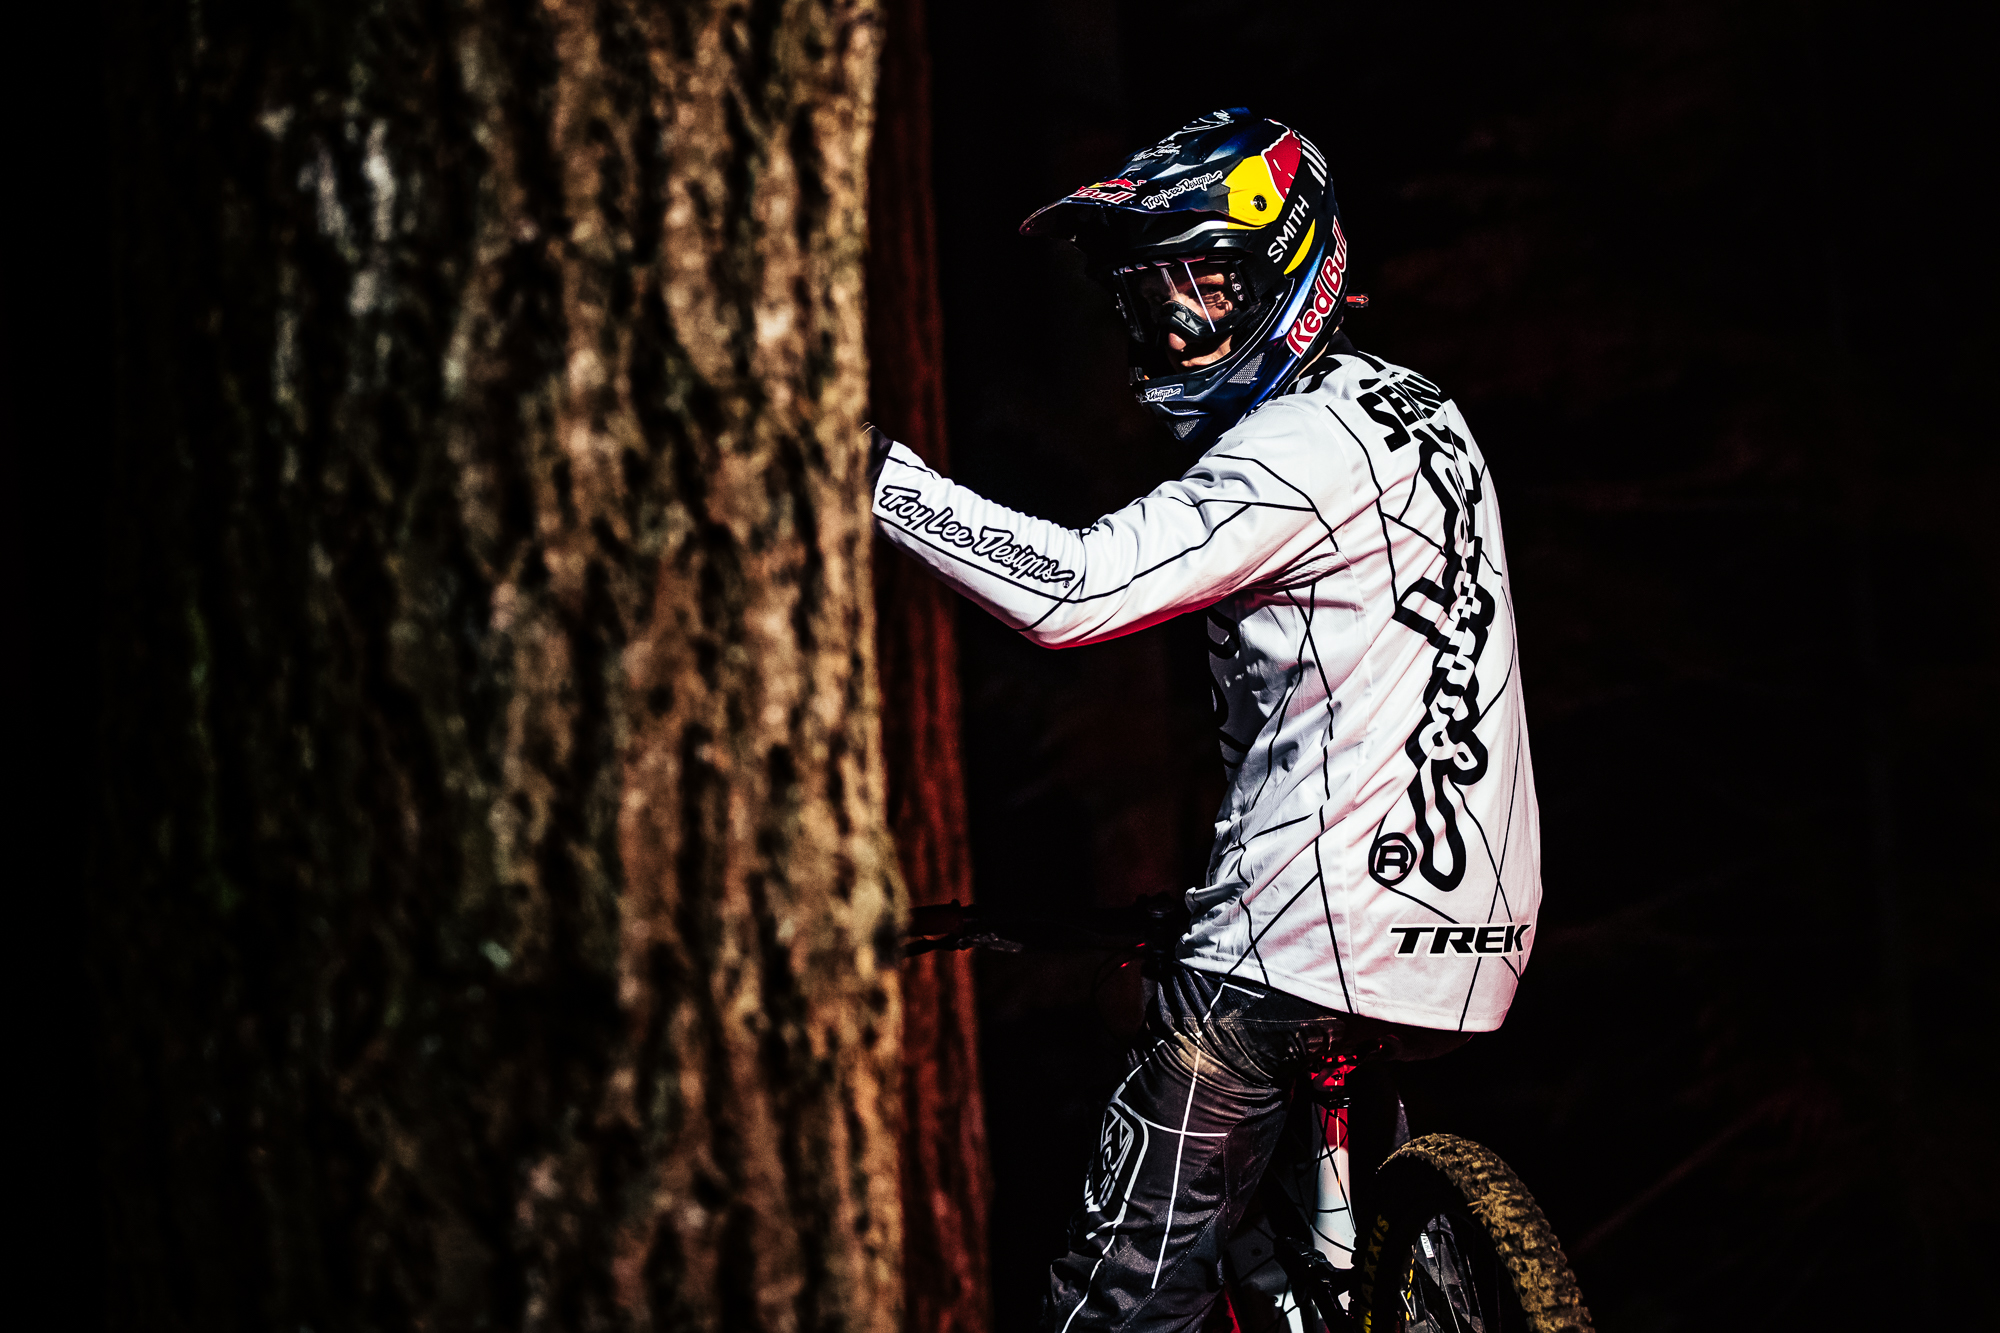 Meet Brandon Semenuk, one of the best mountainbikers on this planet, now entering the rally sport!